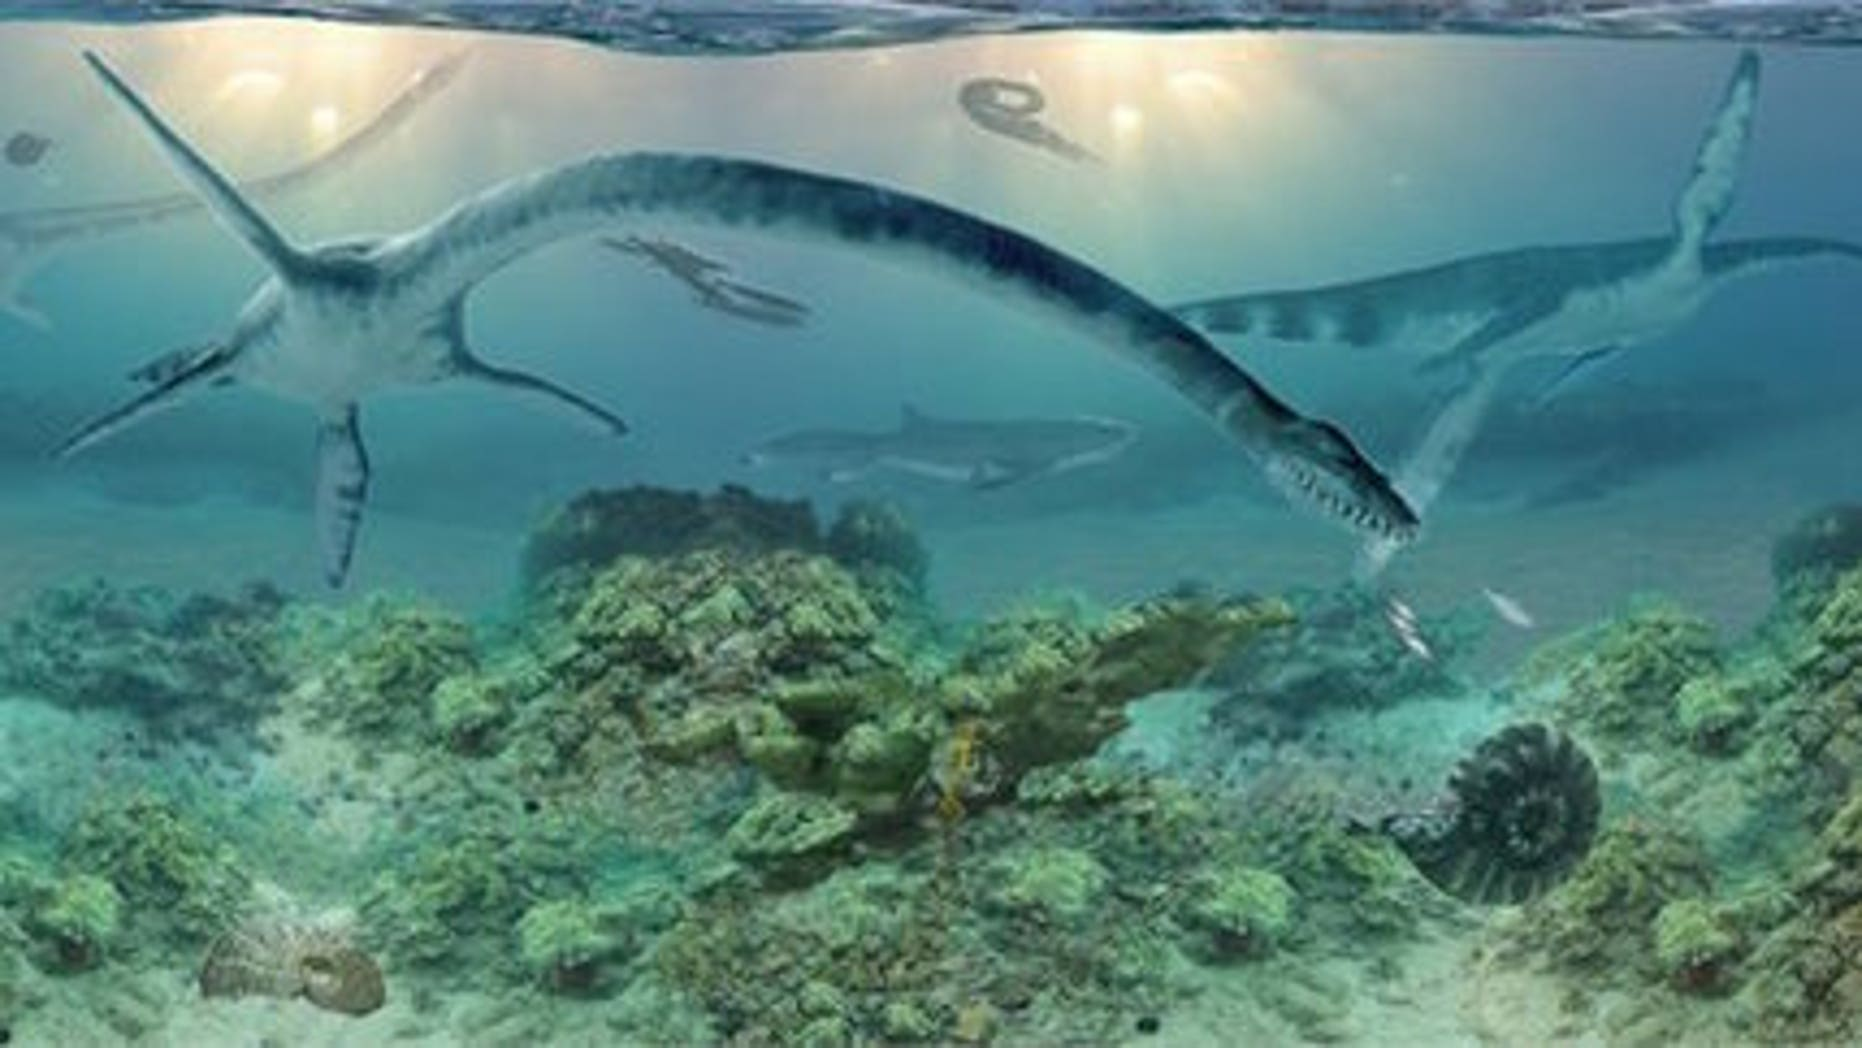 The long-necked elasmosaur as imagined by Anchorage-based artist James Havens, who is working with Druckenmiller to realistically interpret ancient life forms.